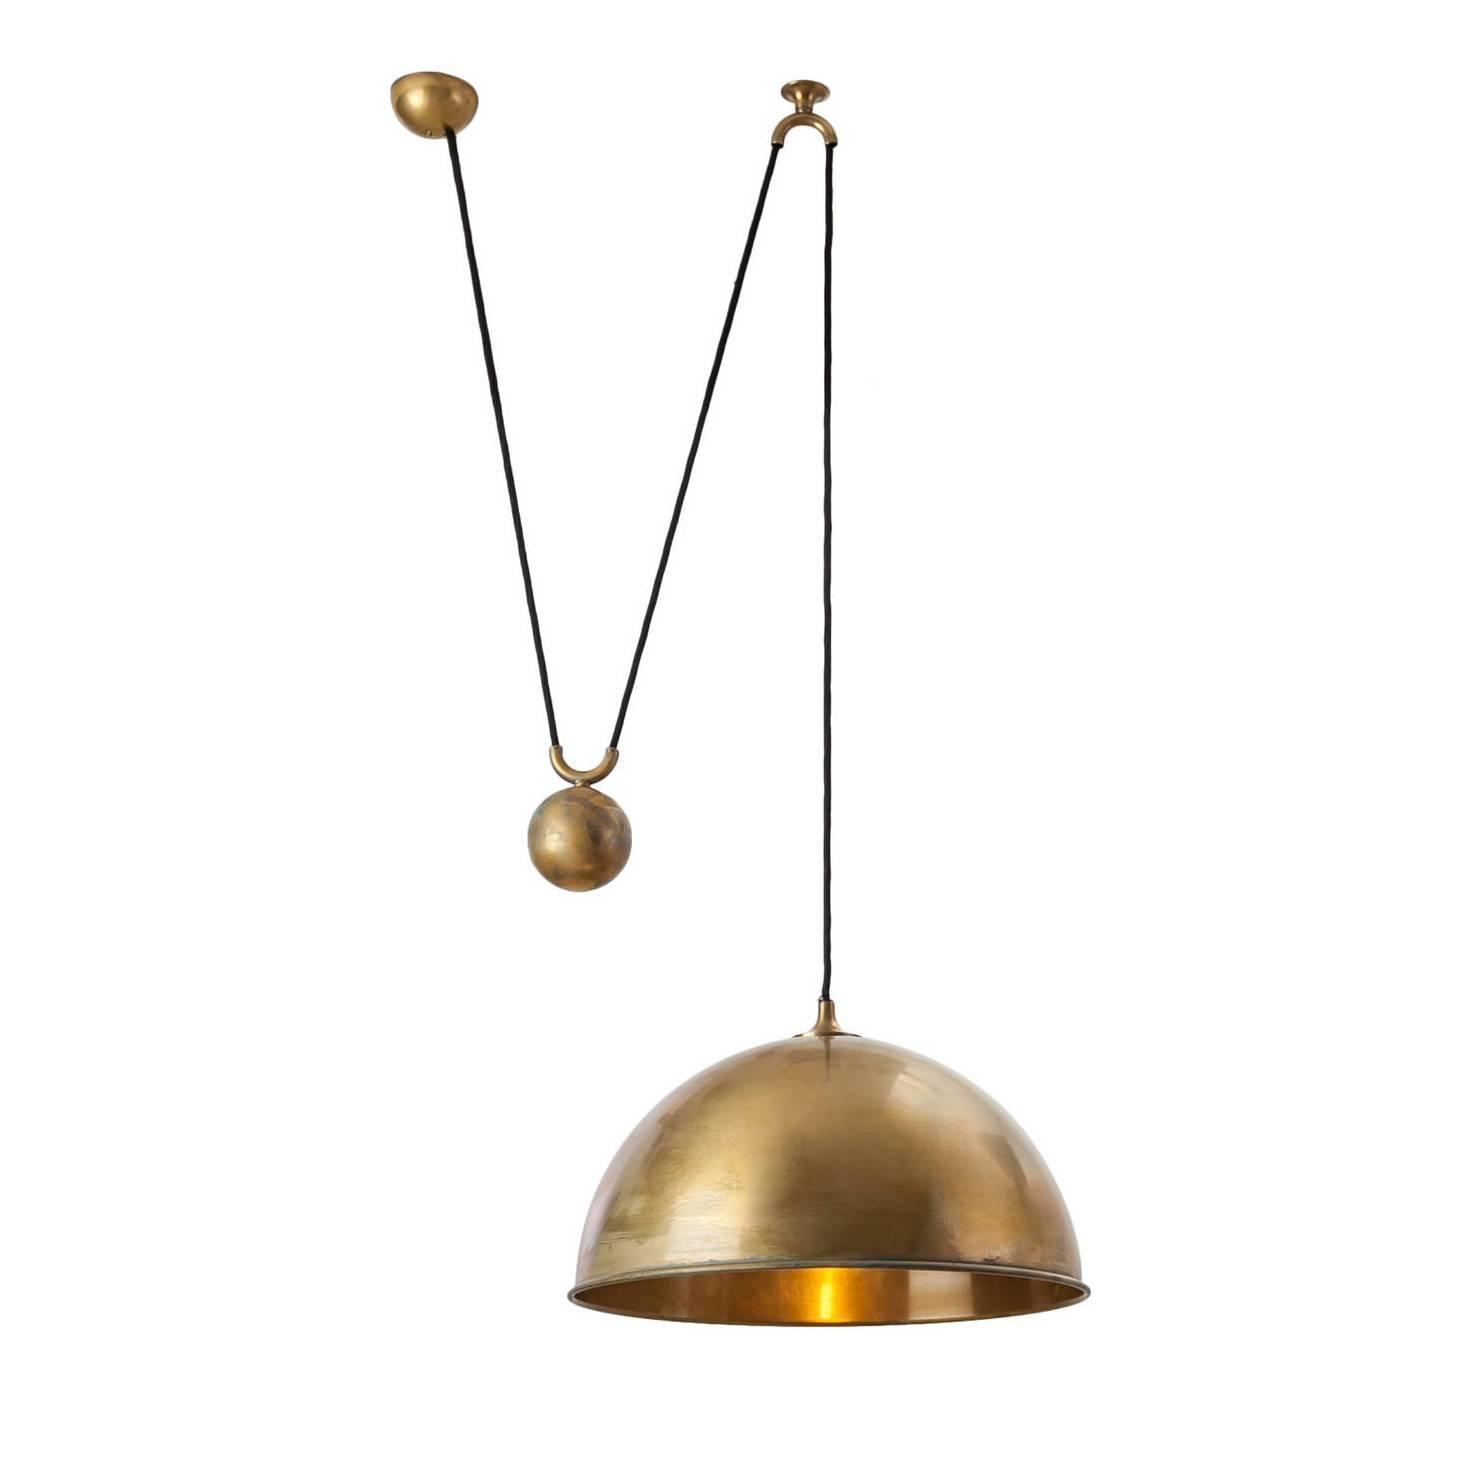 lyfa pendant light brass schleger vintage danish for by fritz